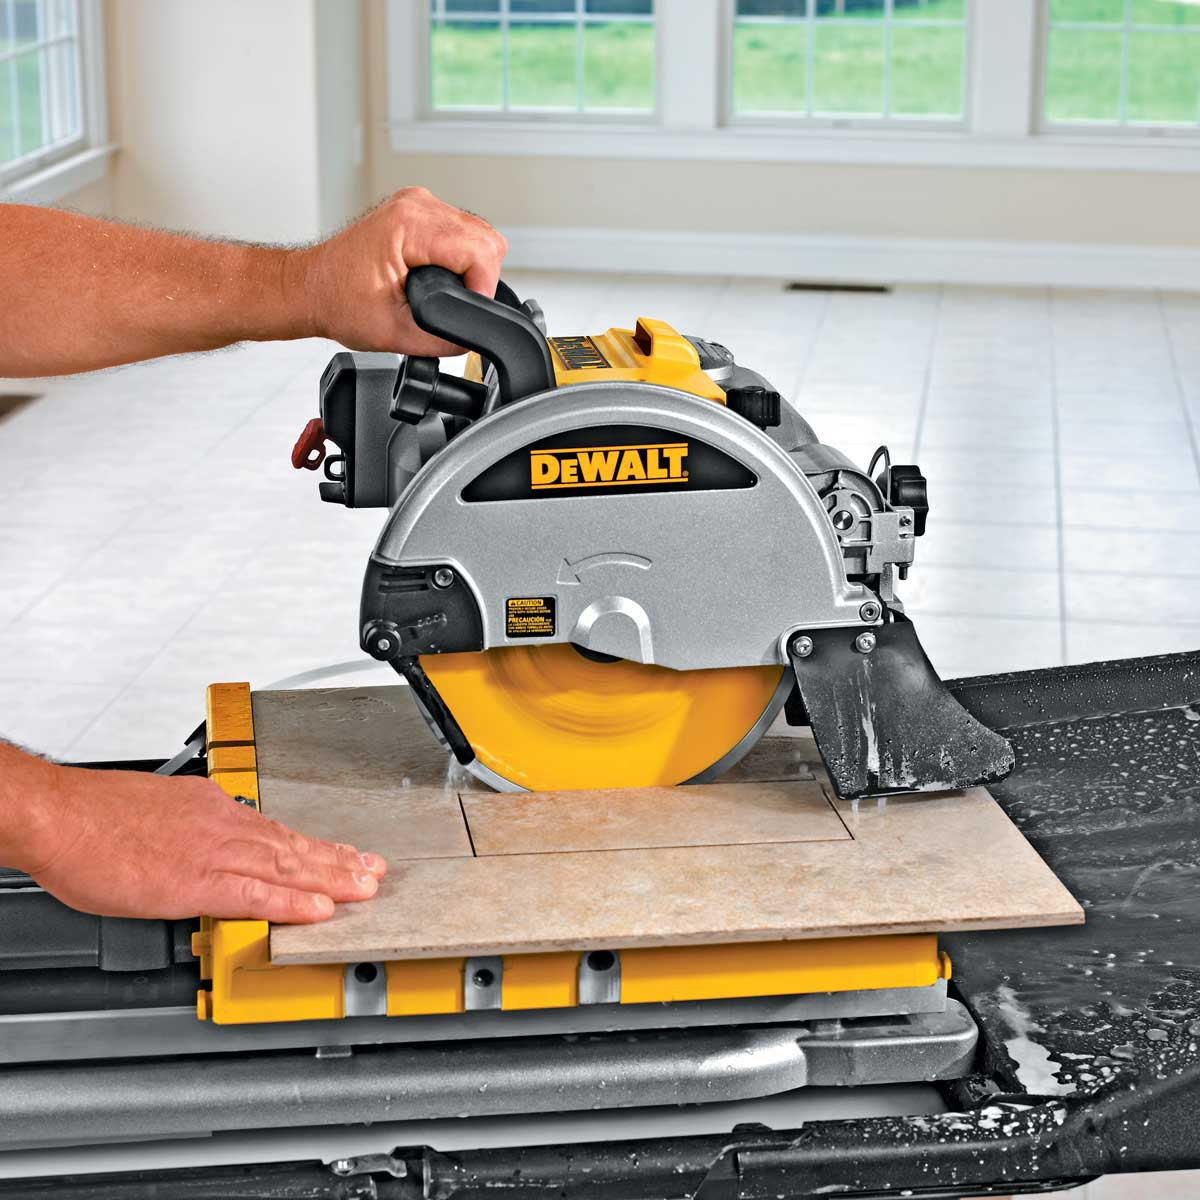 dewalt d24000 tile saw plunge cut